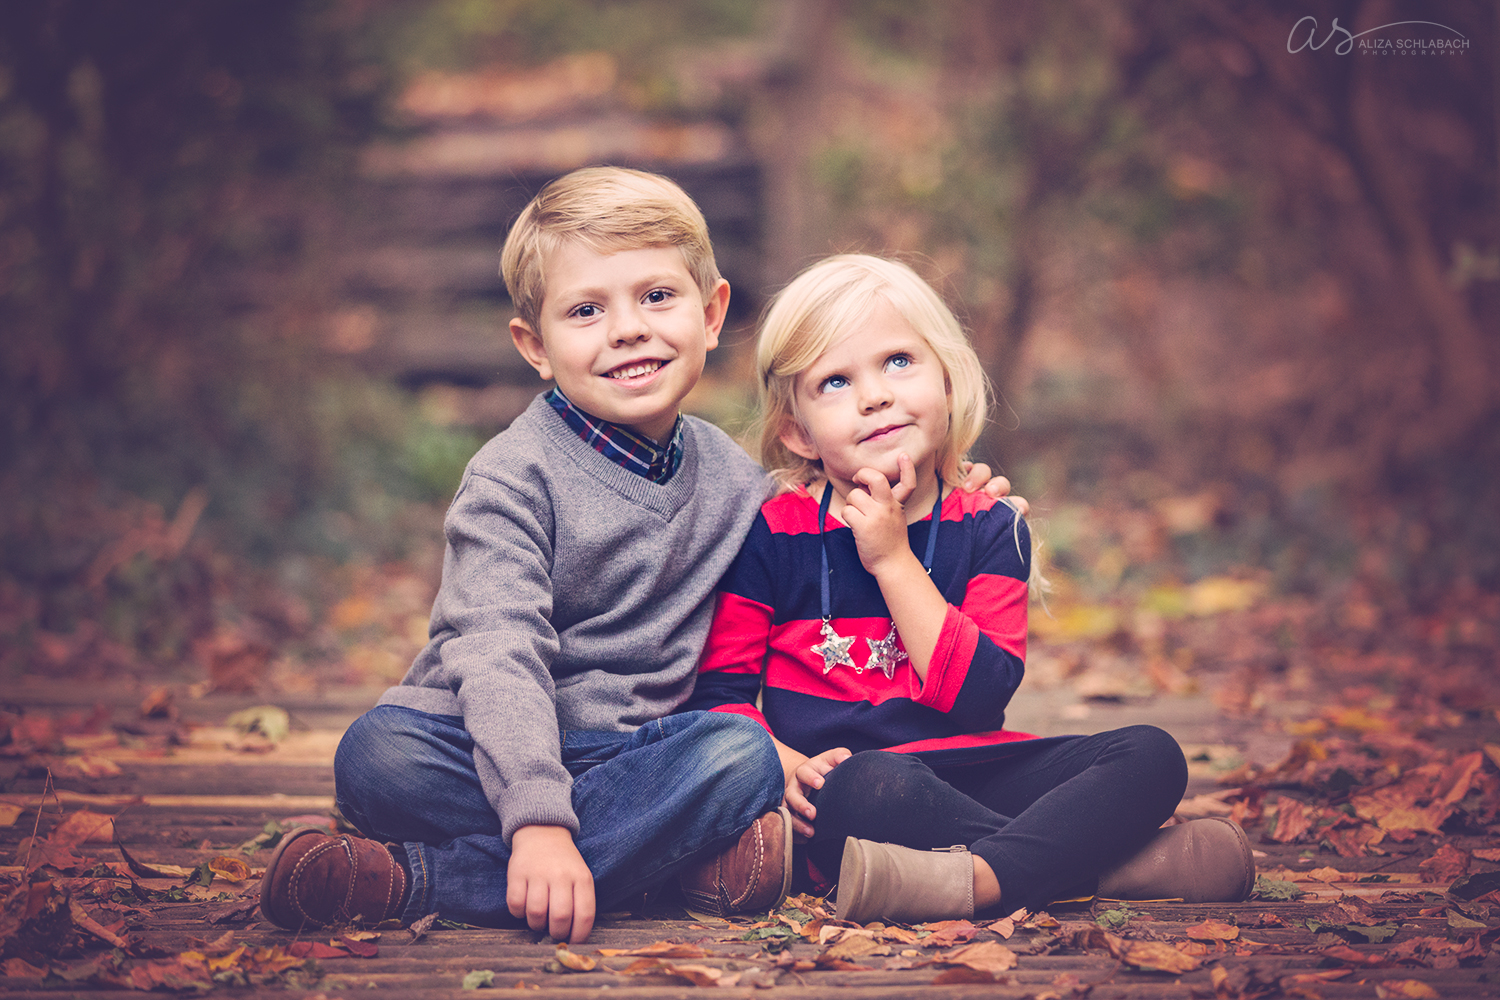 Fall mini session portrait of a little boy and his sister